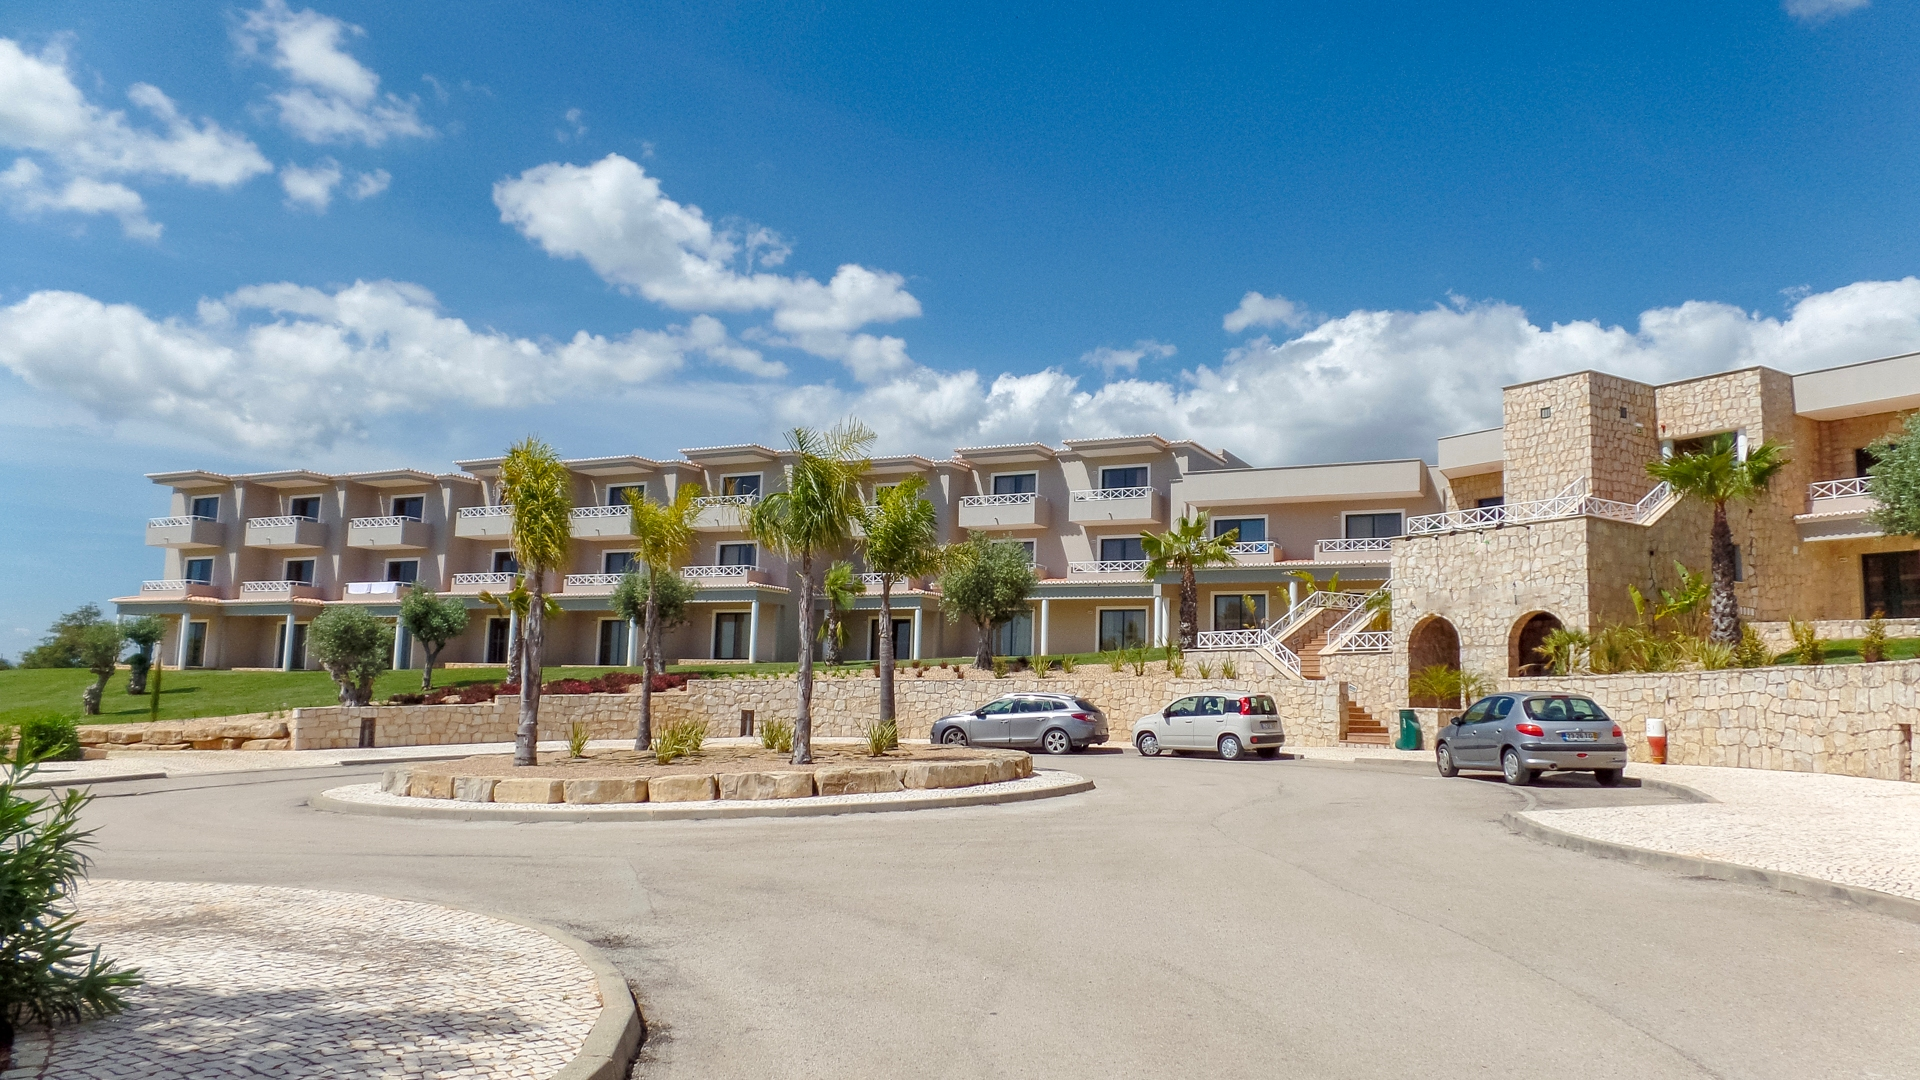 Brand new 2 bedroom triplex apartment on golf resort, Nr Carvoeiro, West Algarve | PCG1094 Two bedroom two bathroom fully fitted and furnished apartment over 3 floors located within the popular Pestana Gramacho golf resort in Carvoeiro. Rental program offering 5% Return on Investment per annum.